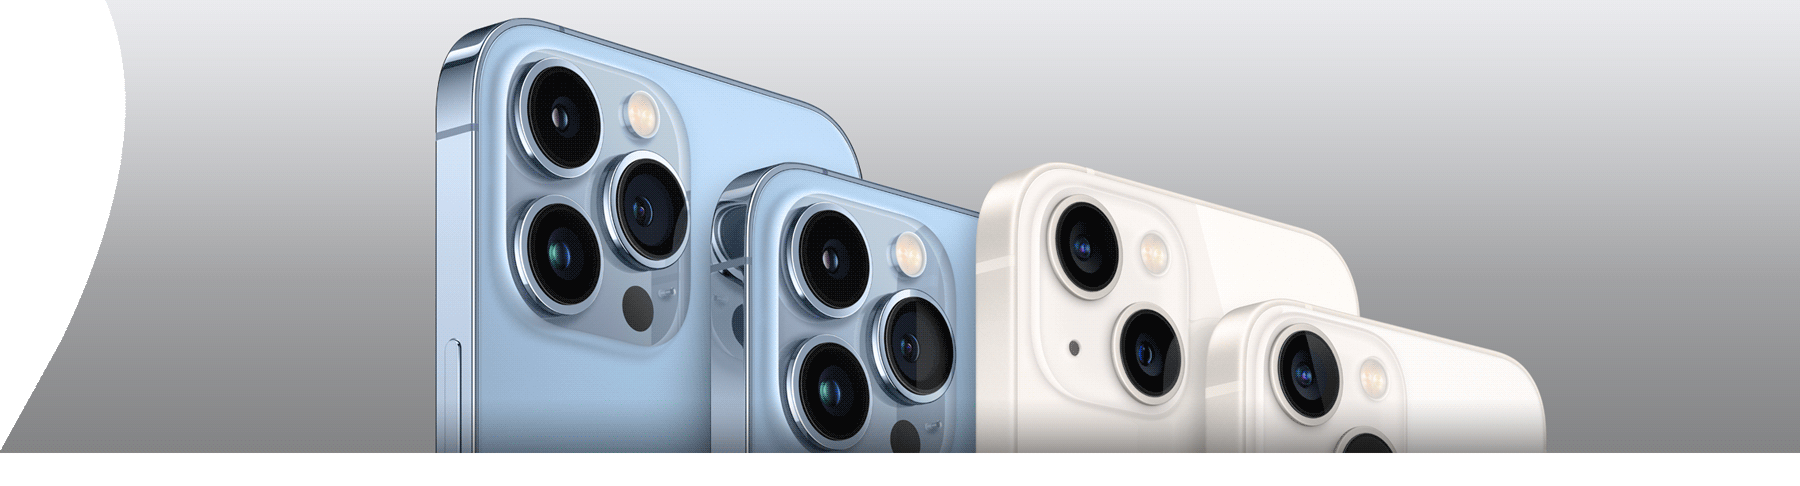 Register for the iPhone 13 & iPhone 13 Pro range